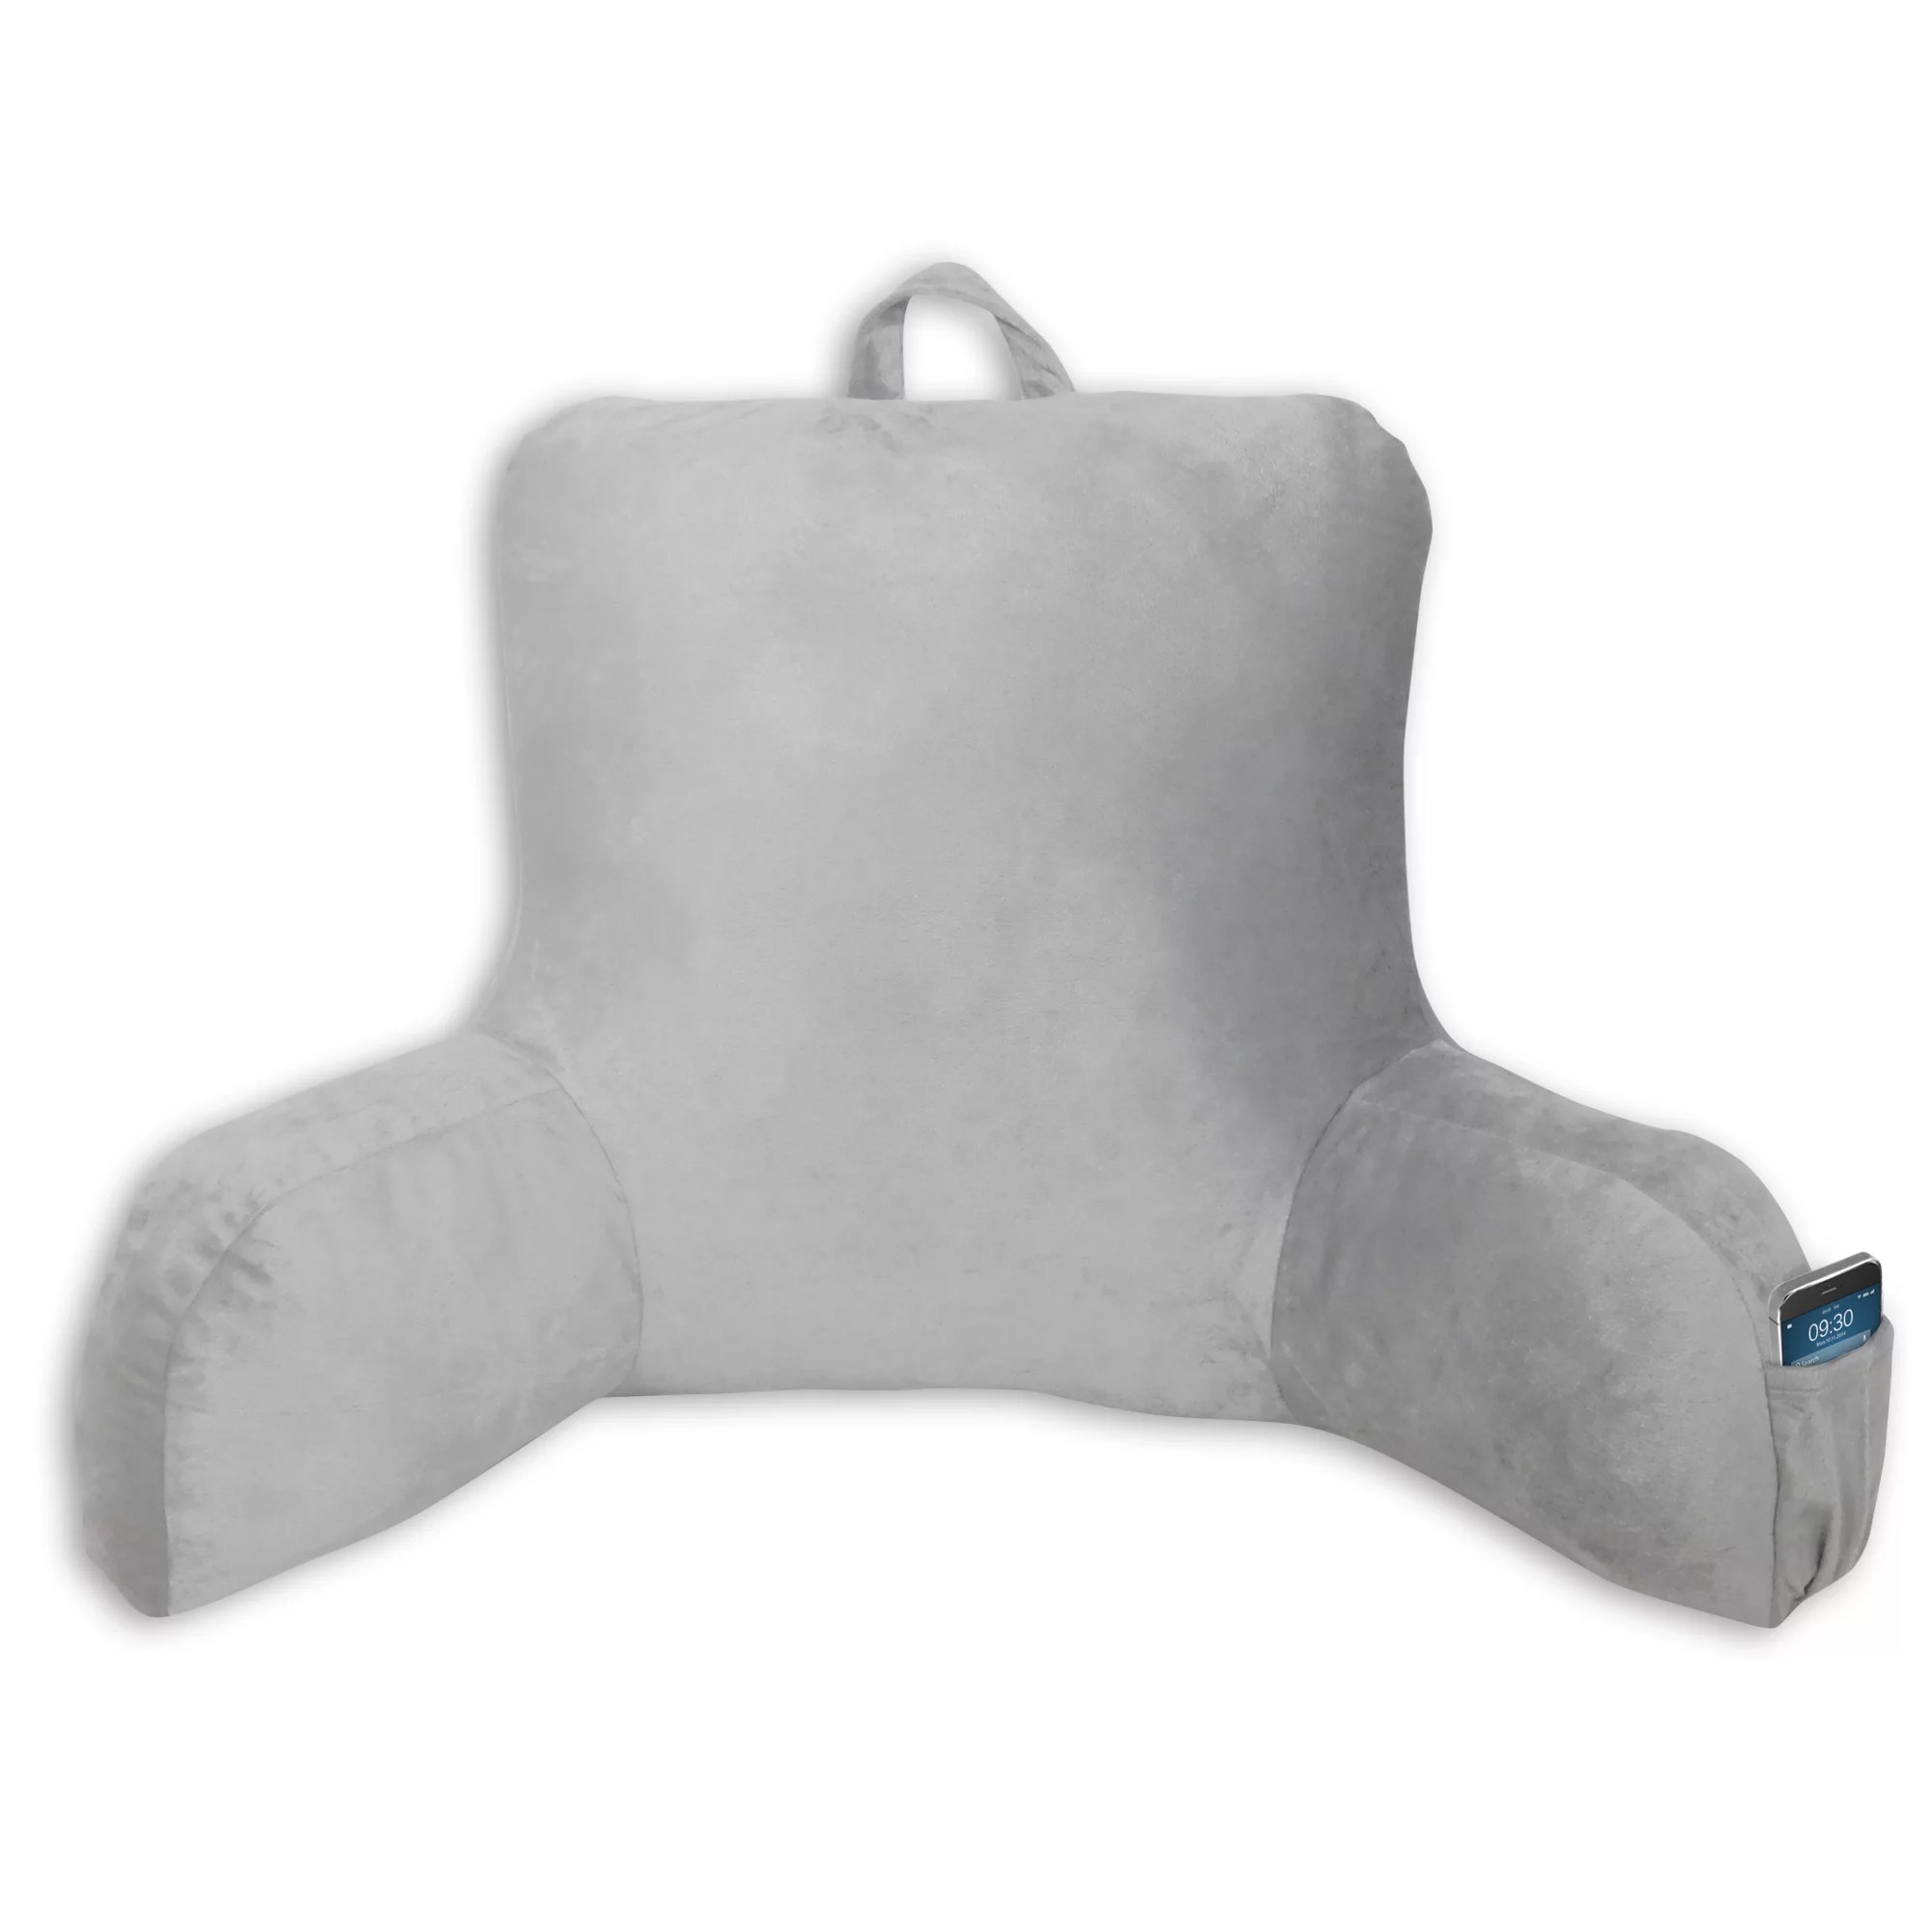 mainstays bed rest lounger pillow faux mink fabric with polyester filling 27 x 14 x 18 solid color soft silver with pocket